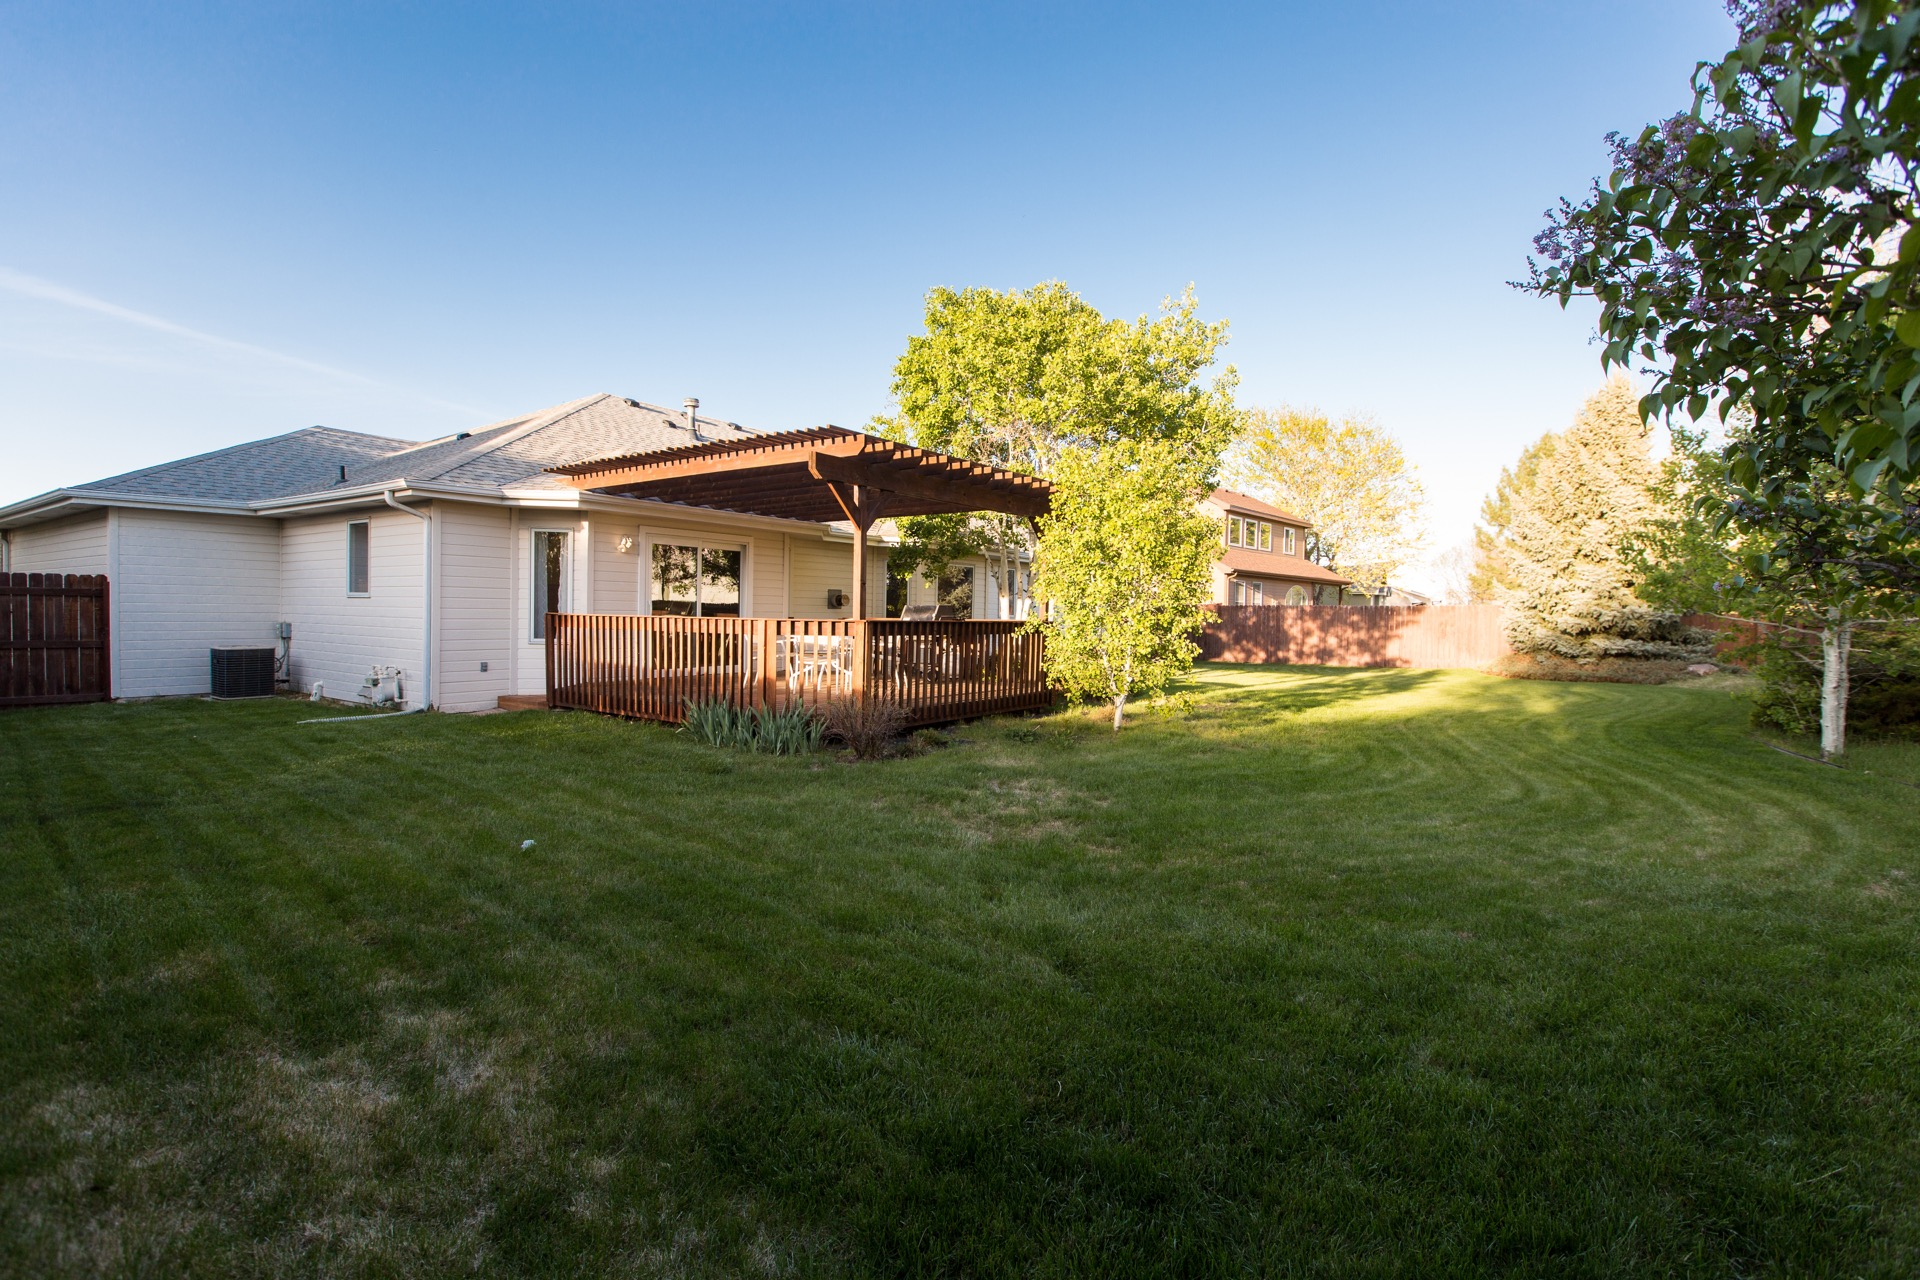 7136 Canberra St Greeley, CO-8.jpg